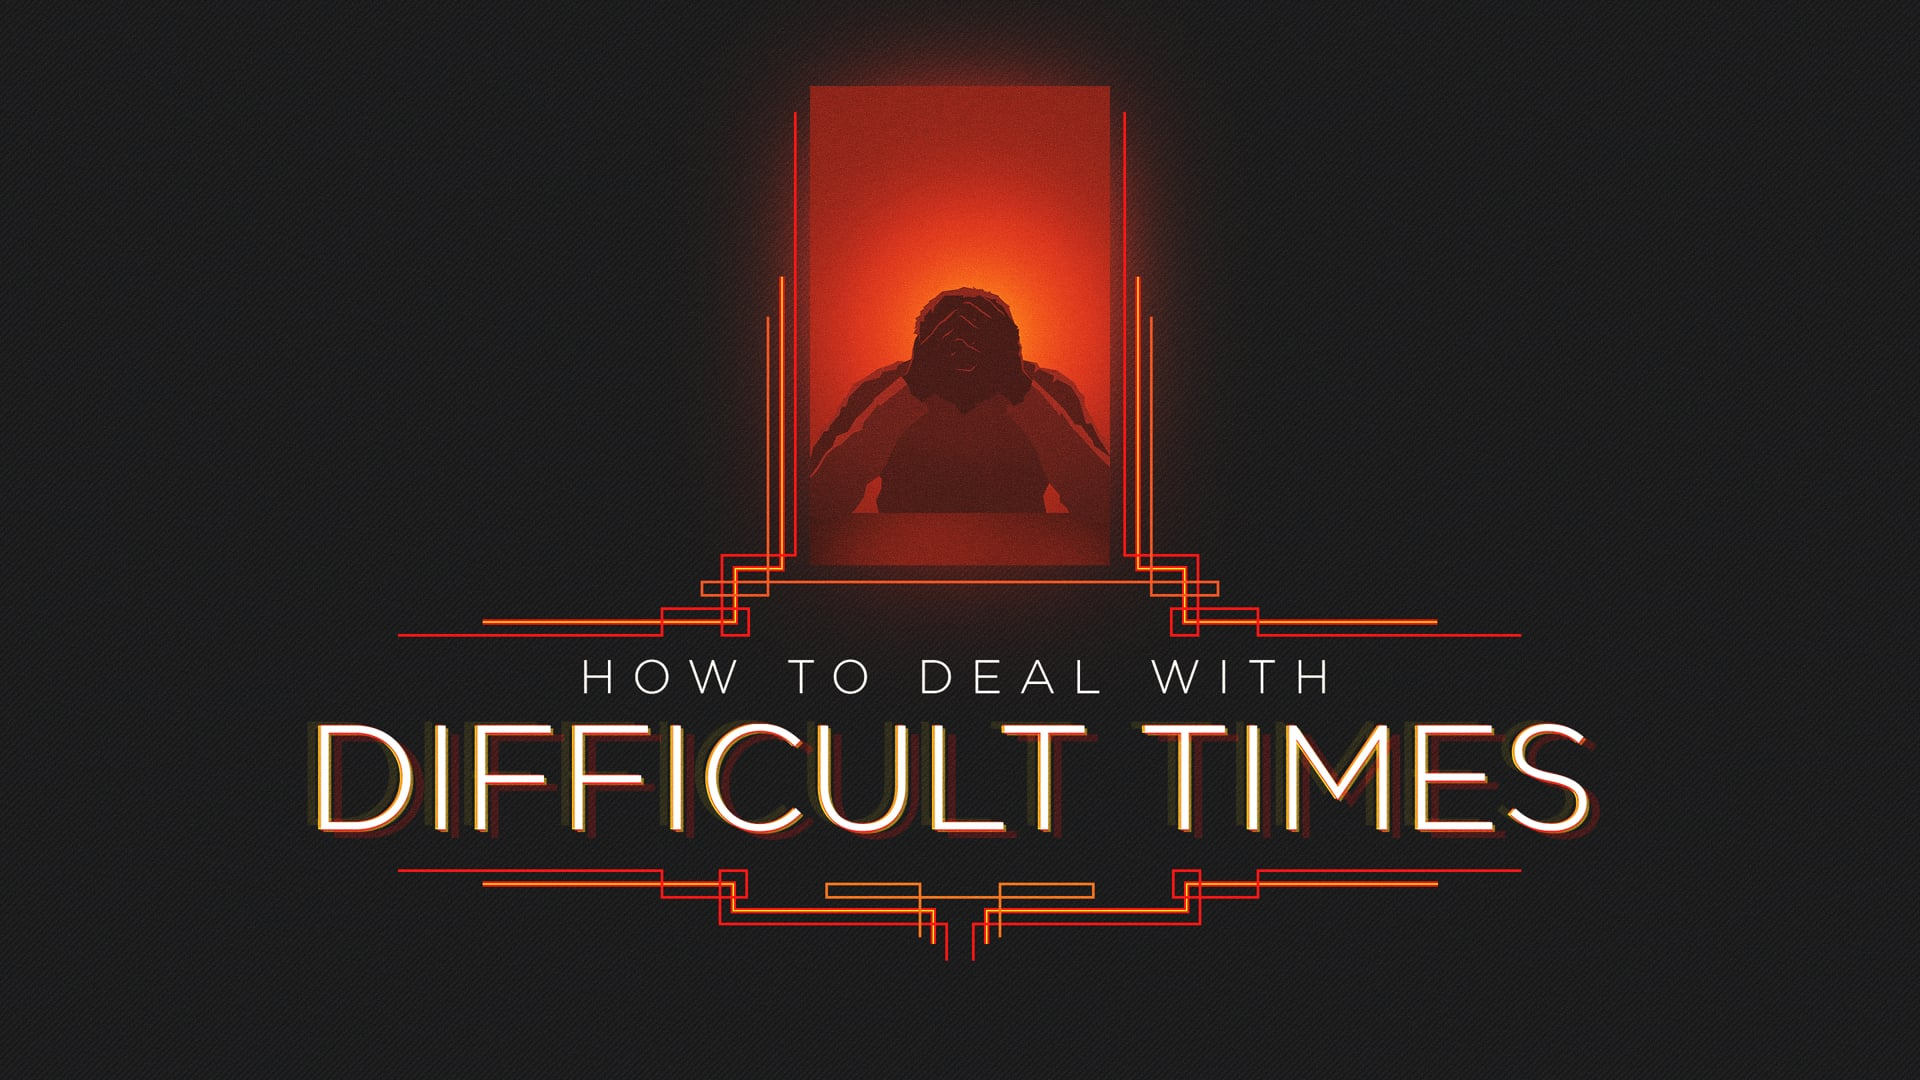 How to Deal with Difficult Times